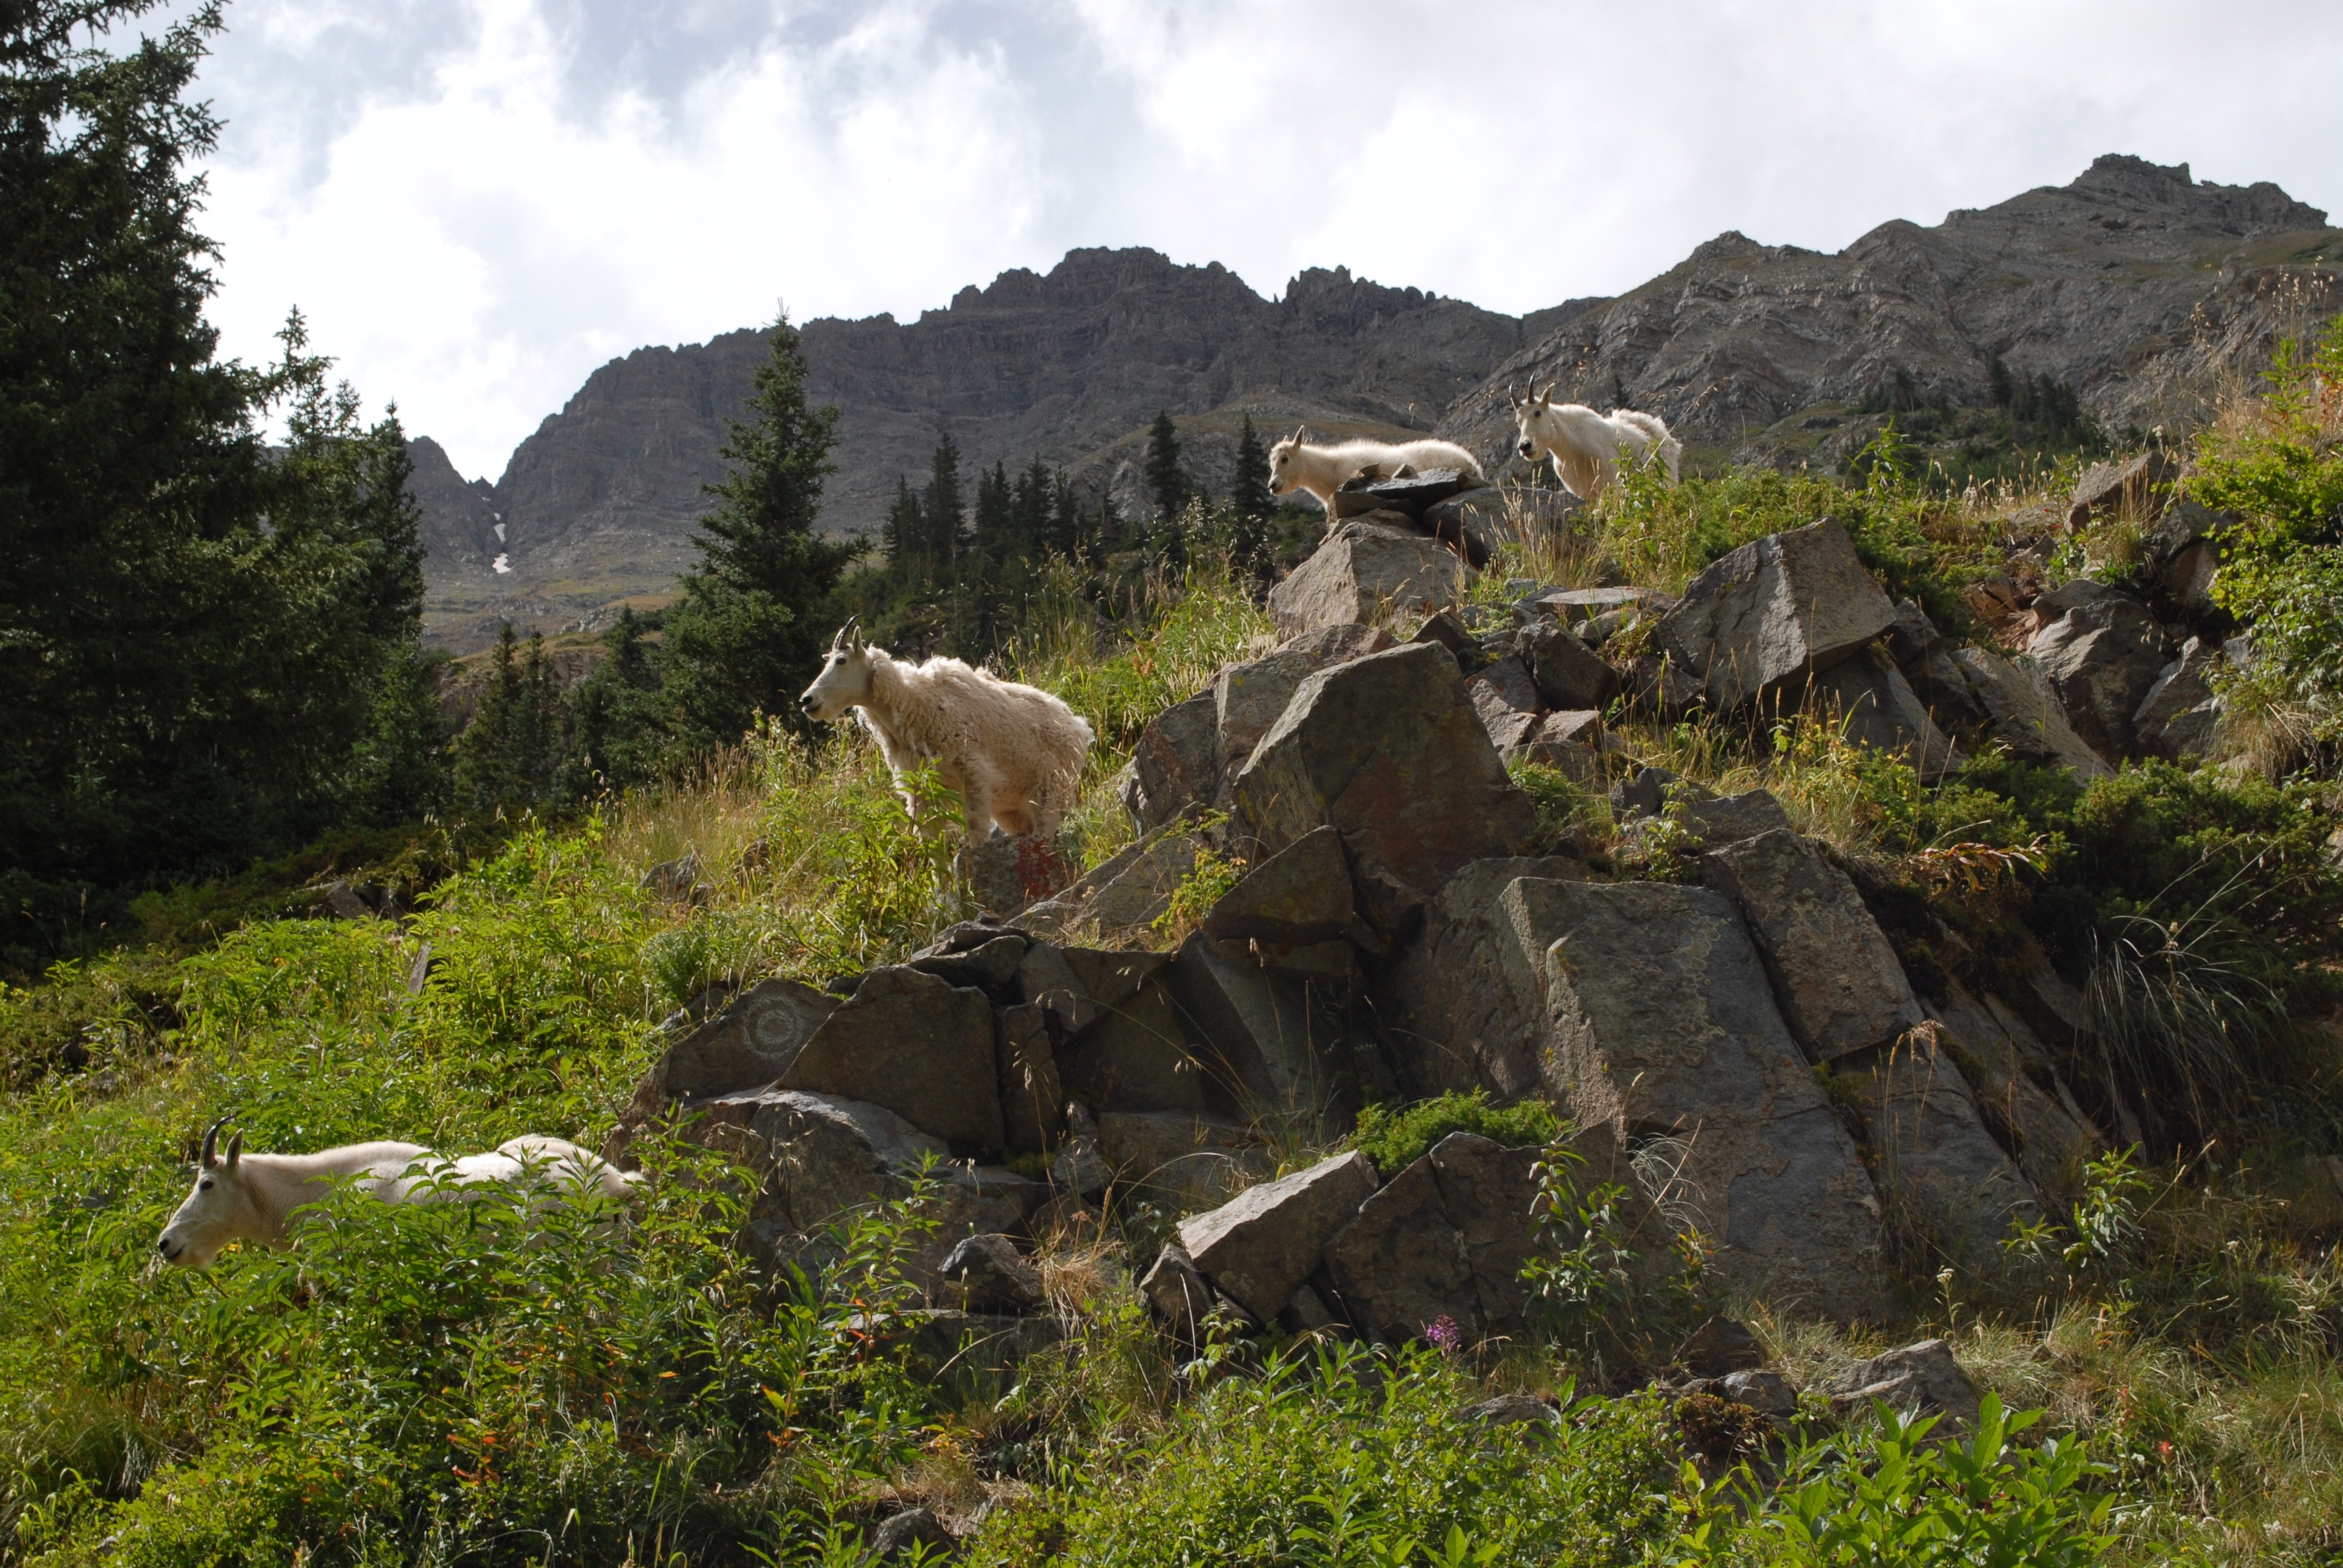 Views of wildlife on the Four Pass Loop trail